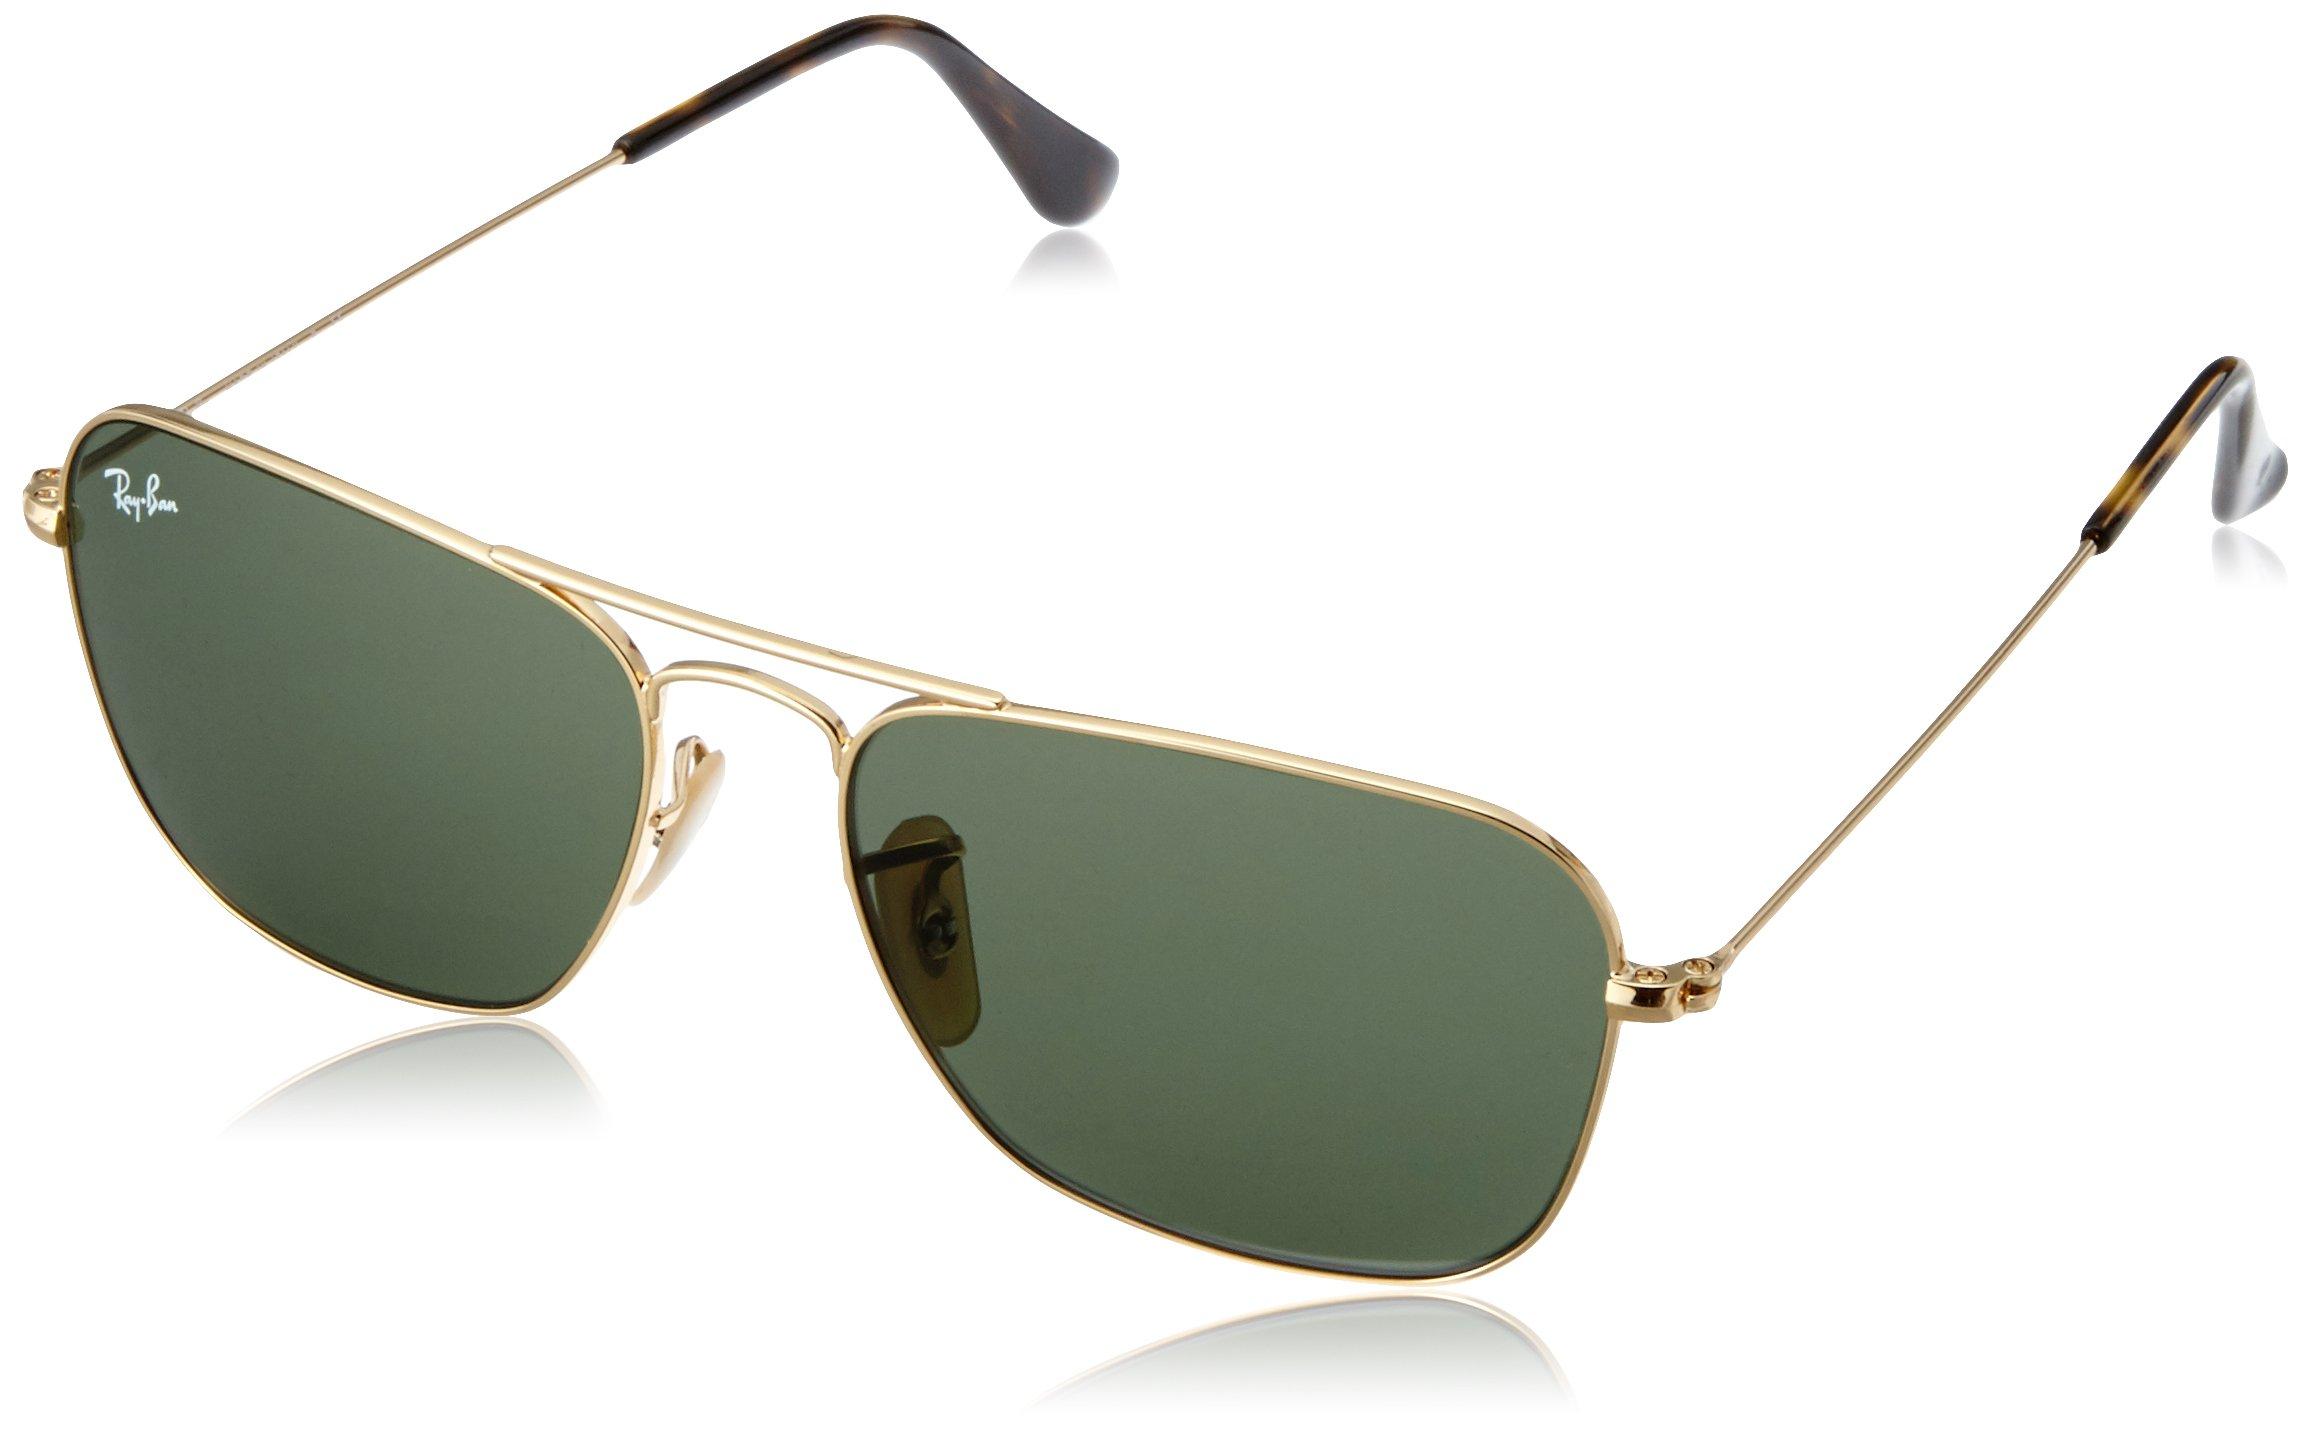 RAY-BAN RB3136 Caravan Square Sunglasses, Gold/Green, 55 mm by RAY-BAN